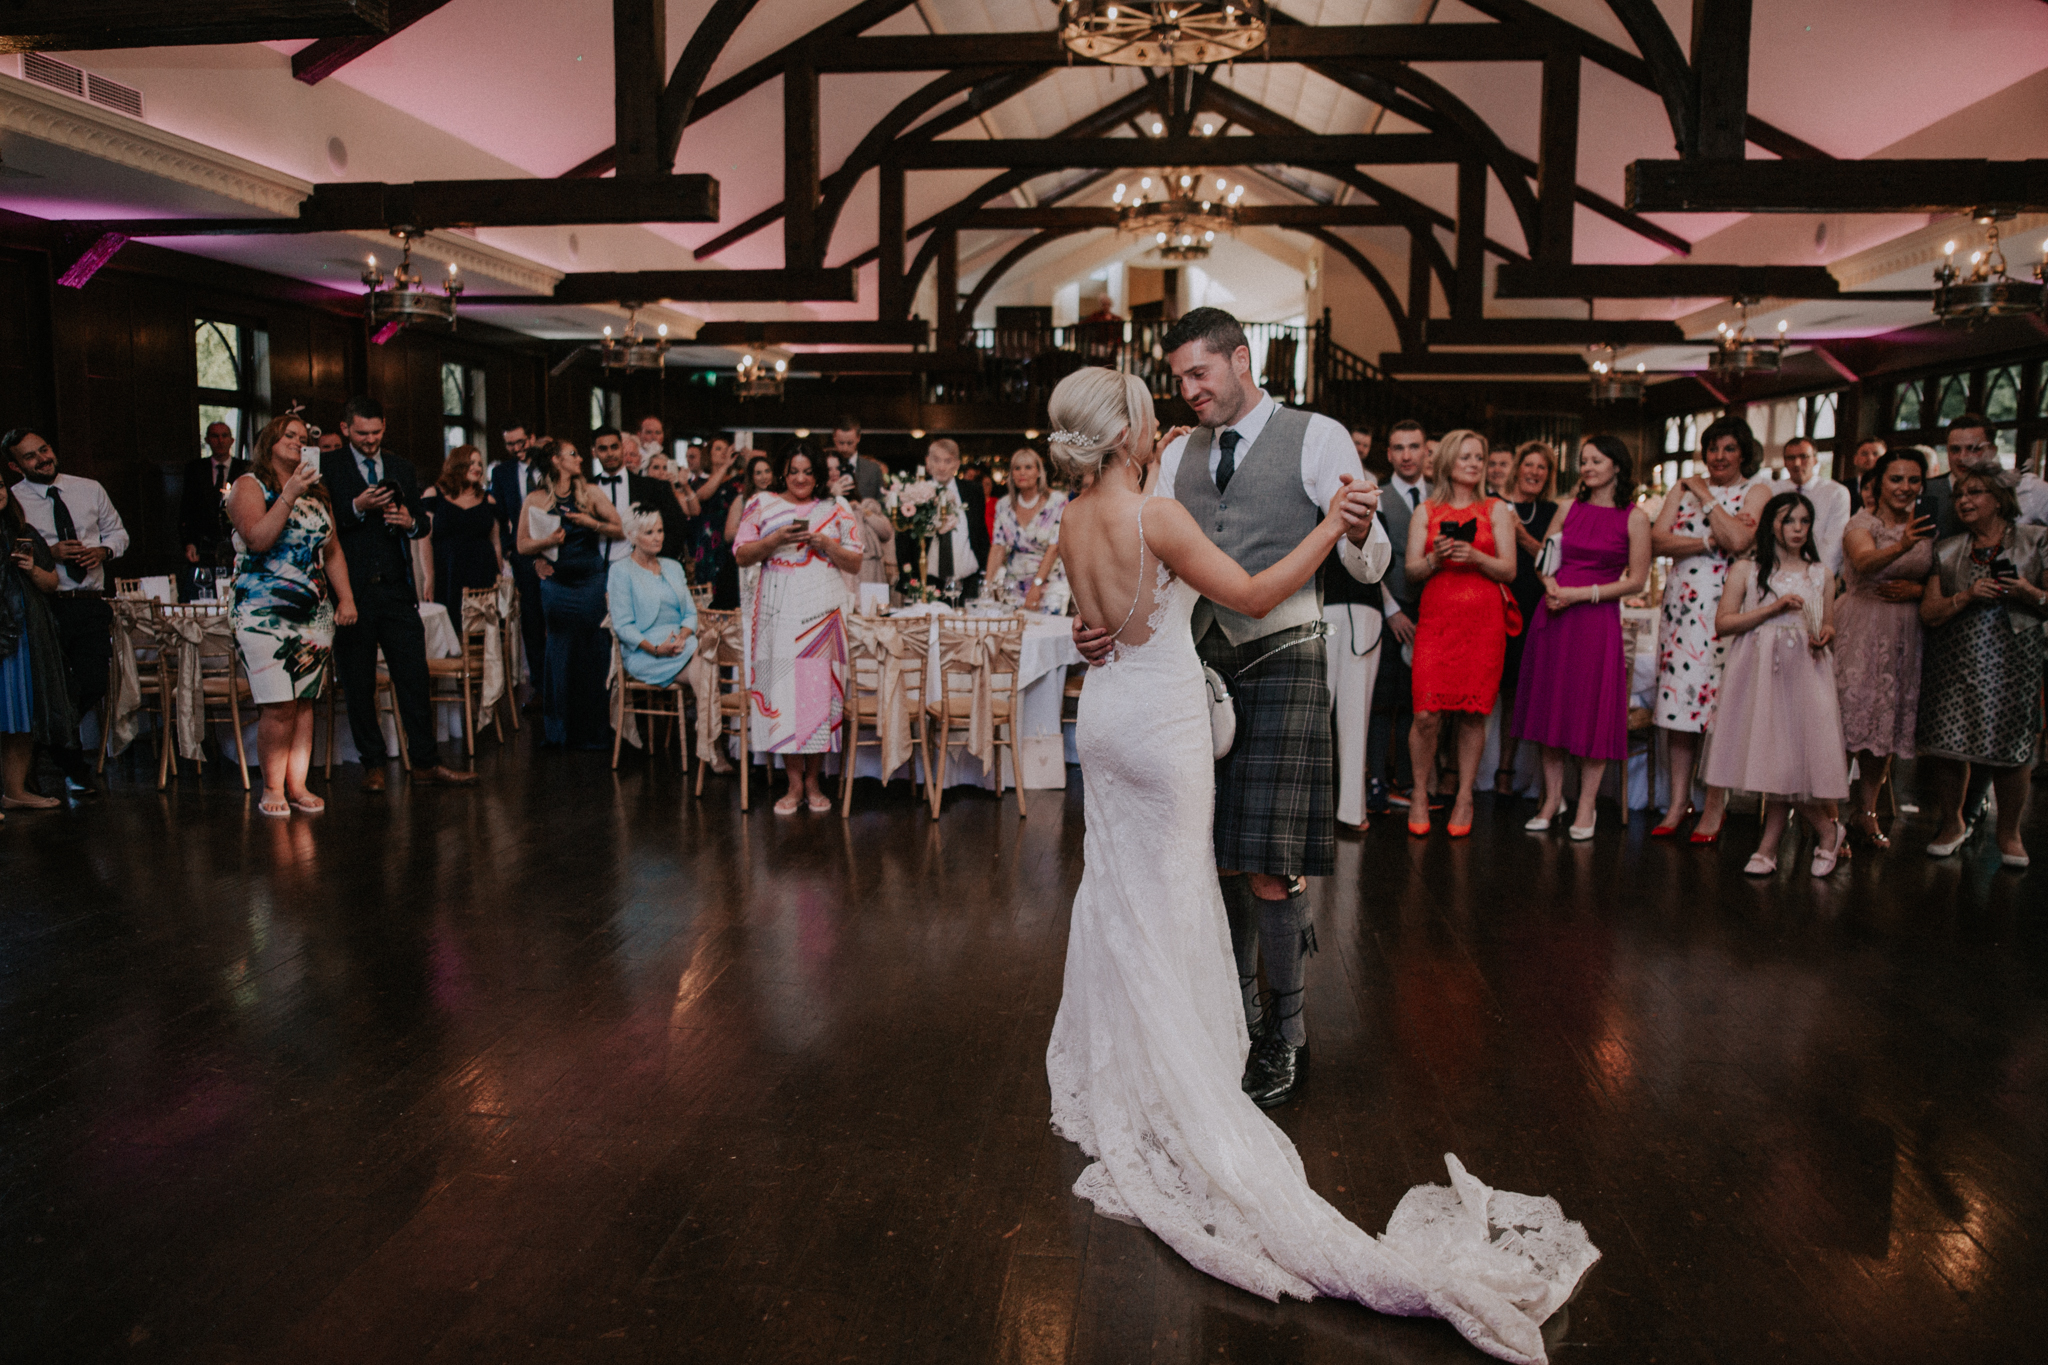 The first dance as a husband and wife at the Crossbasket castle